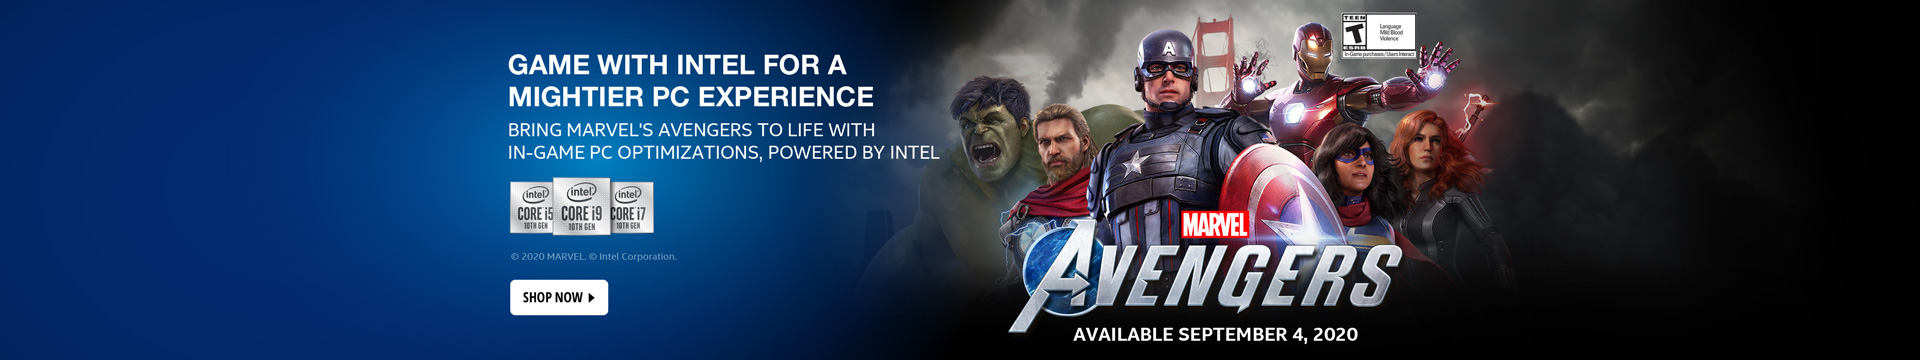 Intel Avengers 10th Gen Experience